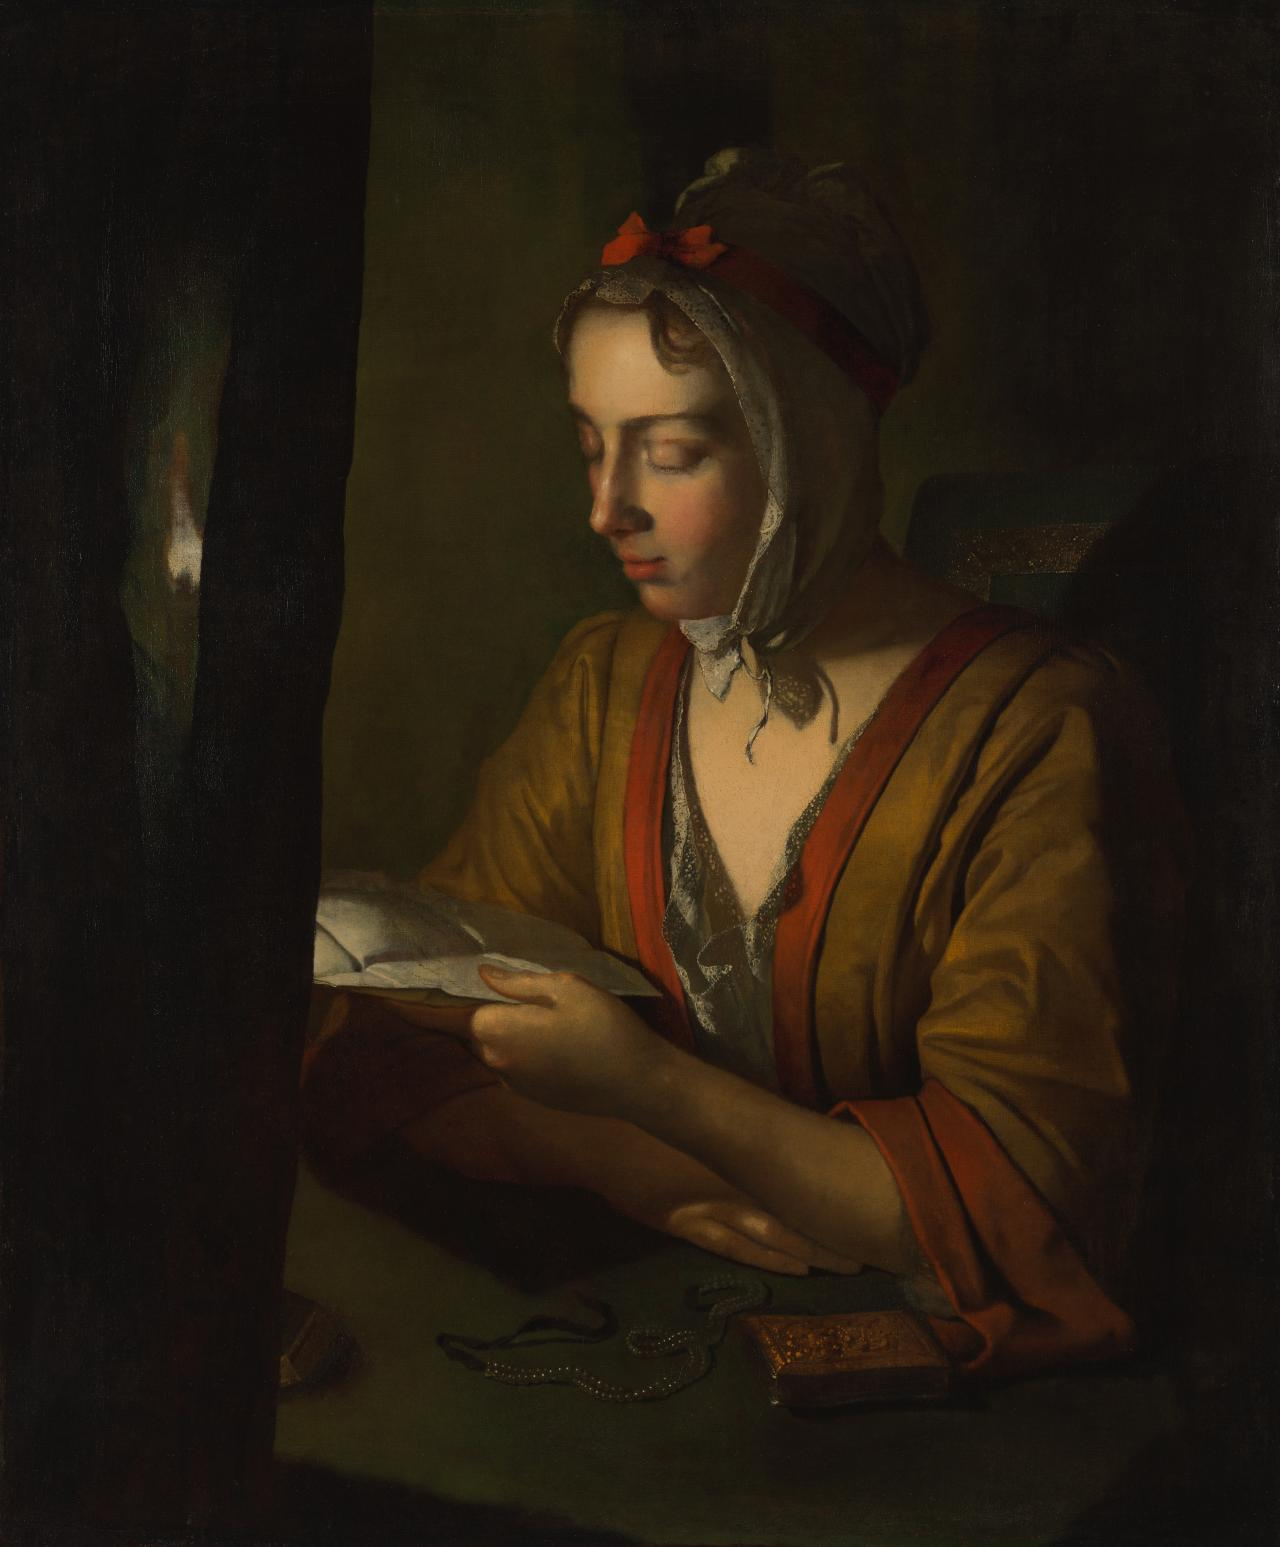 (Anna Romana Wright reading by candlelight)